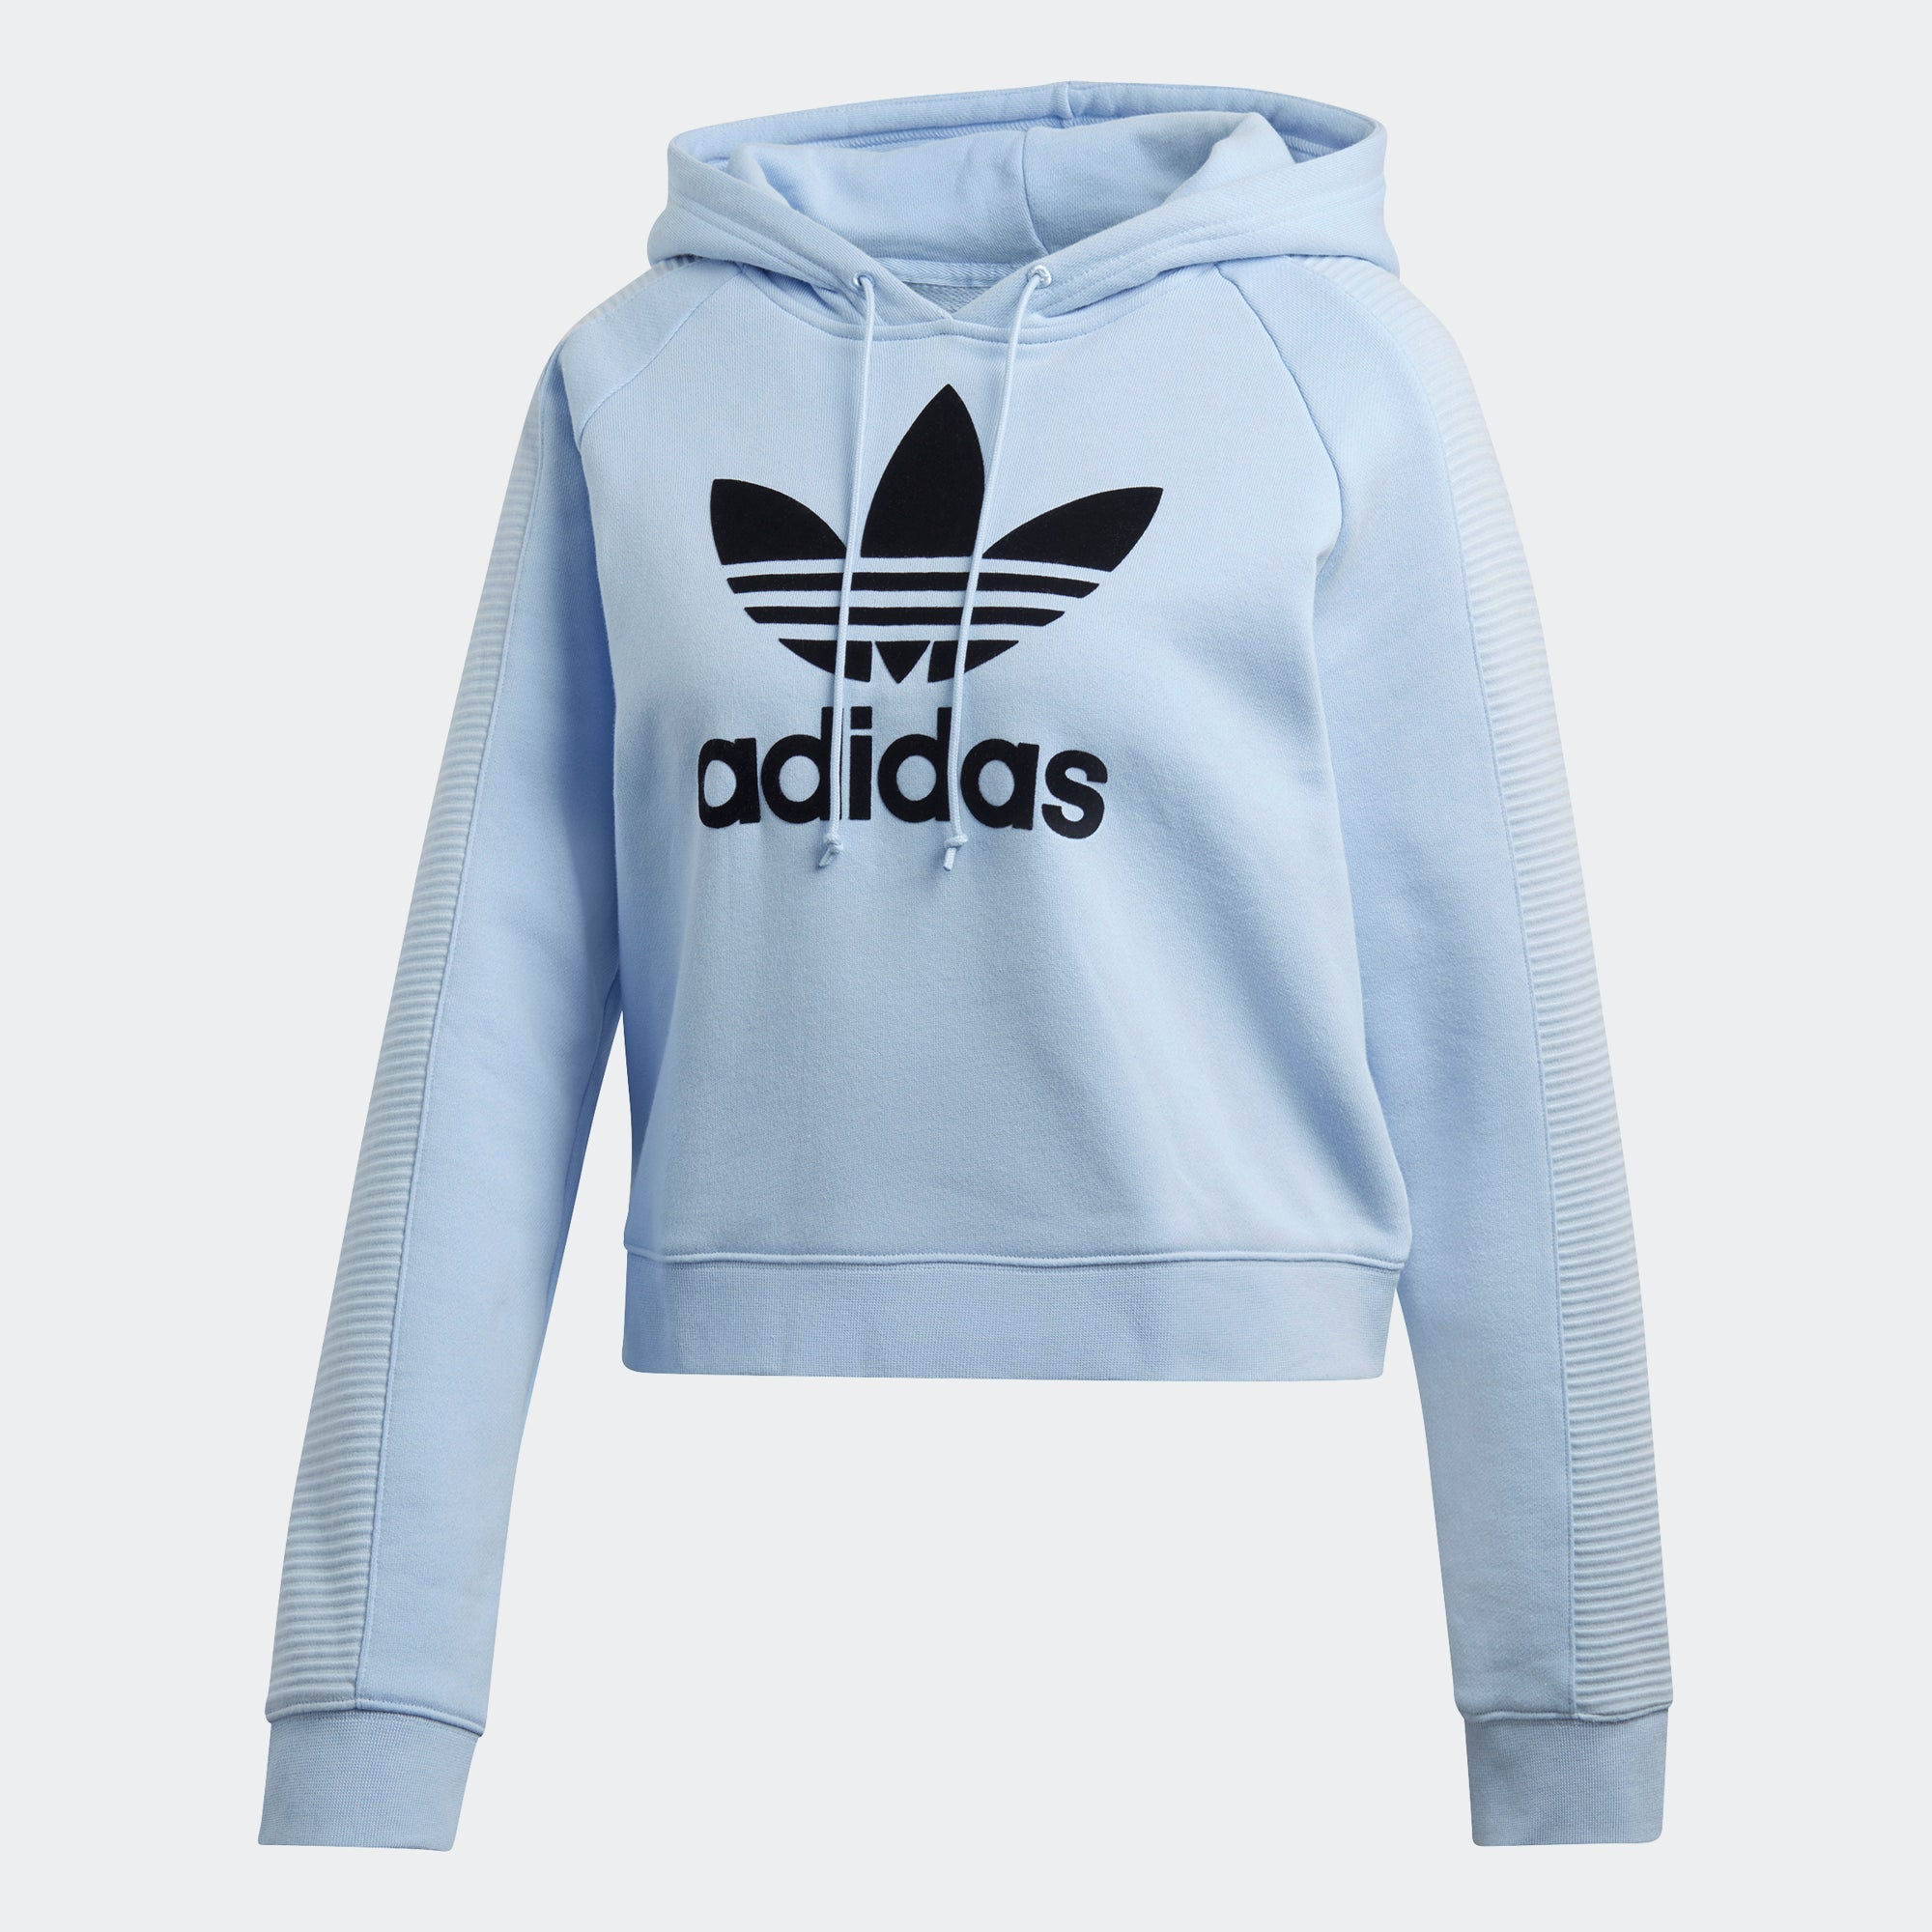 adidas Cropped Hoodie Periwinkle DU9874 | Chicago City Sports